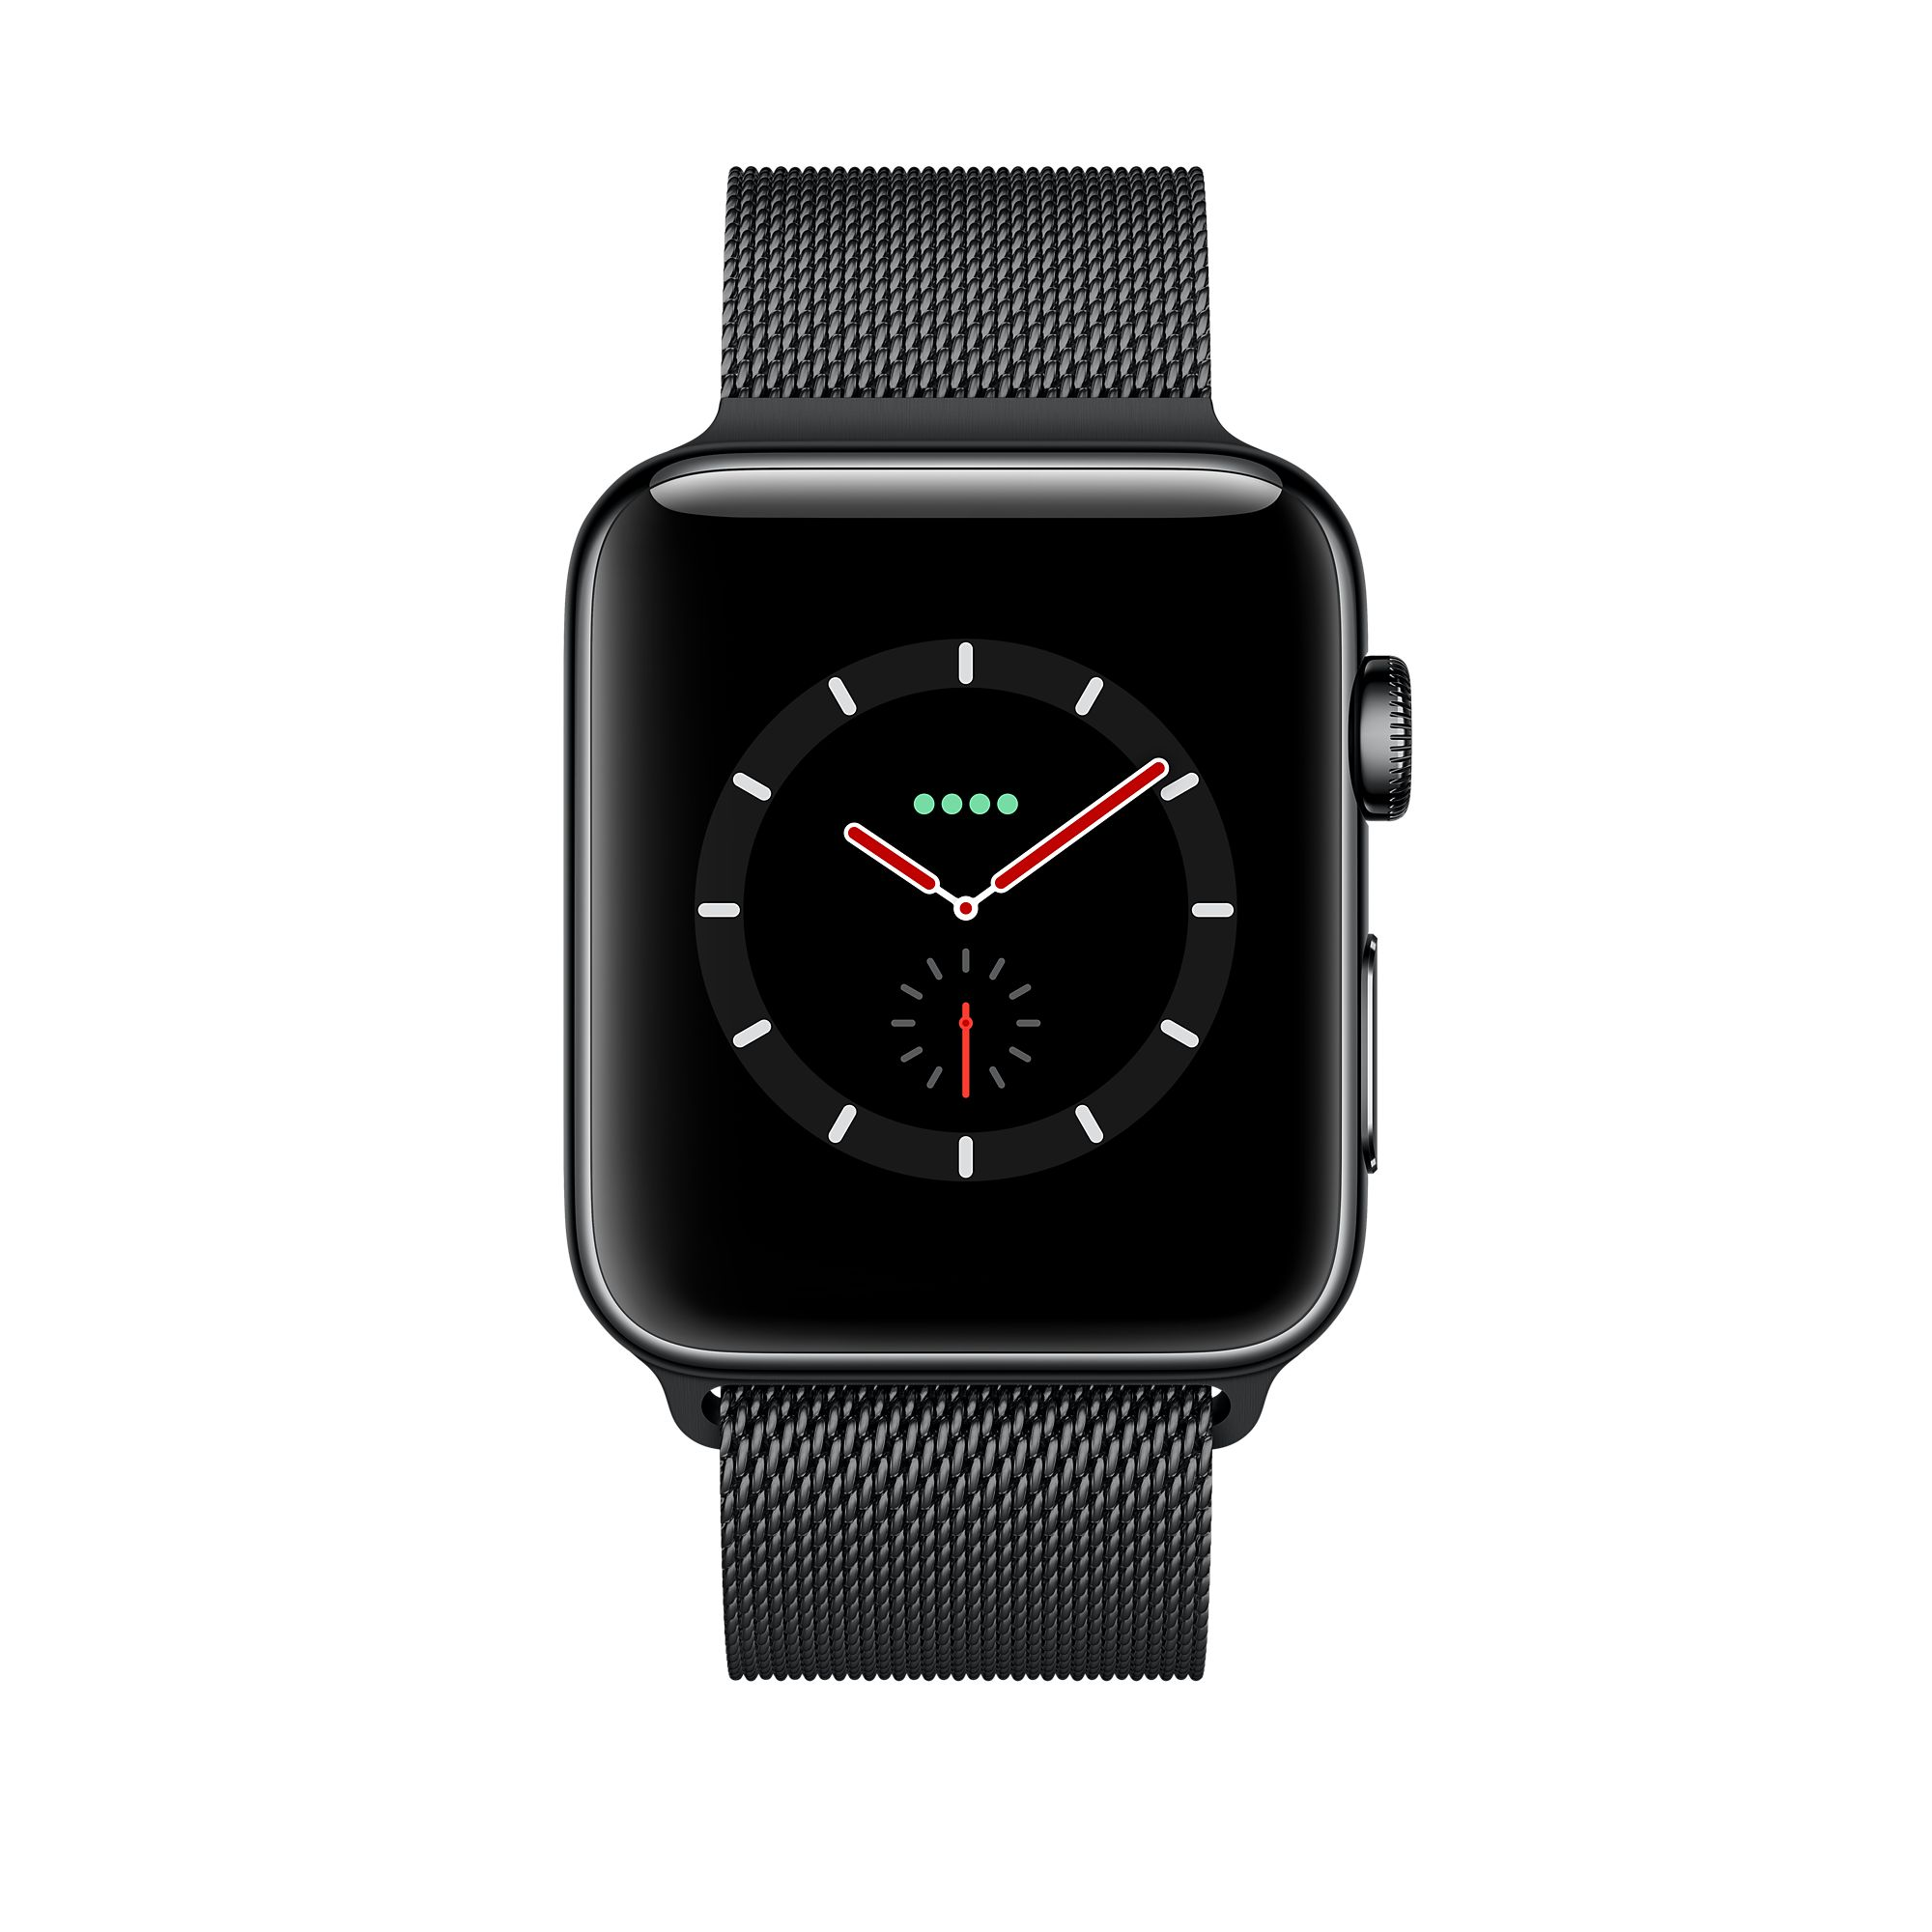 Apple Watch Series 3 GPS + Cellular 42mm, Space Black Stainless Steel Case with Space Black Milanese Loop